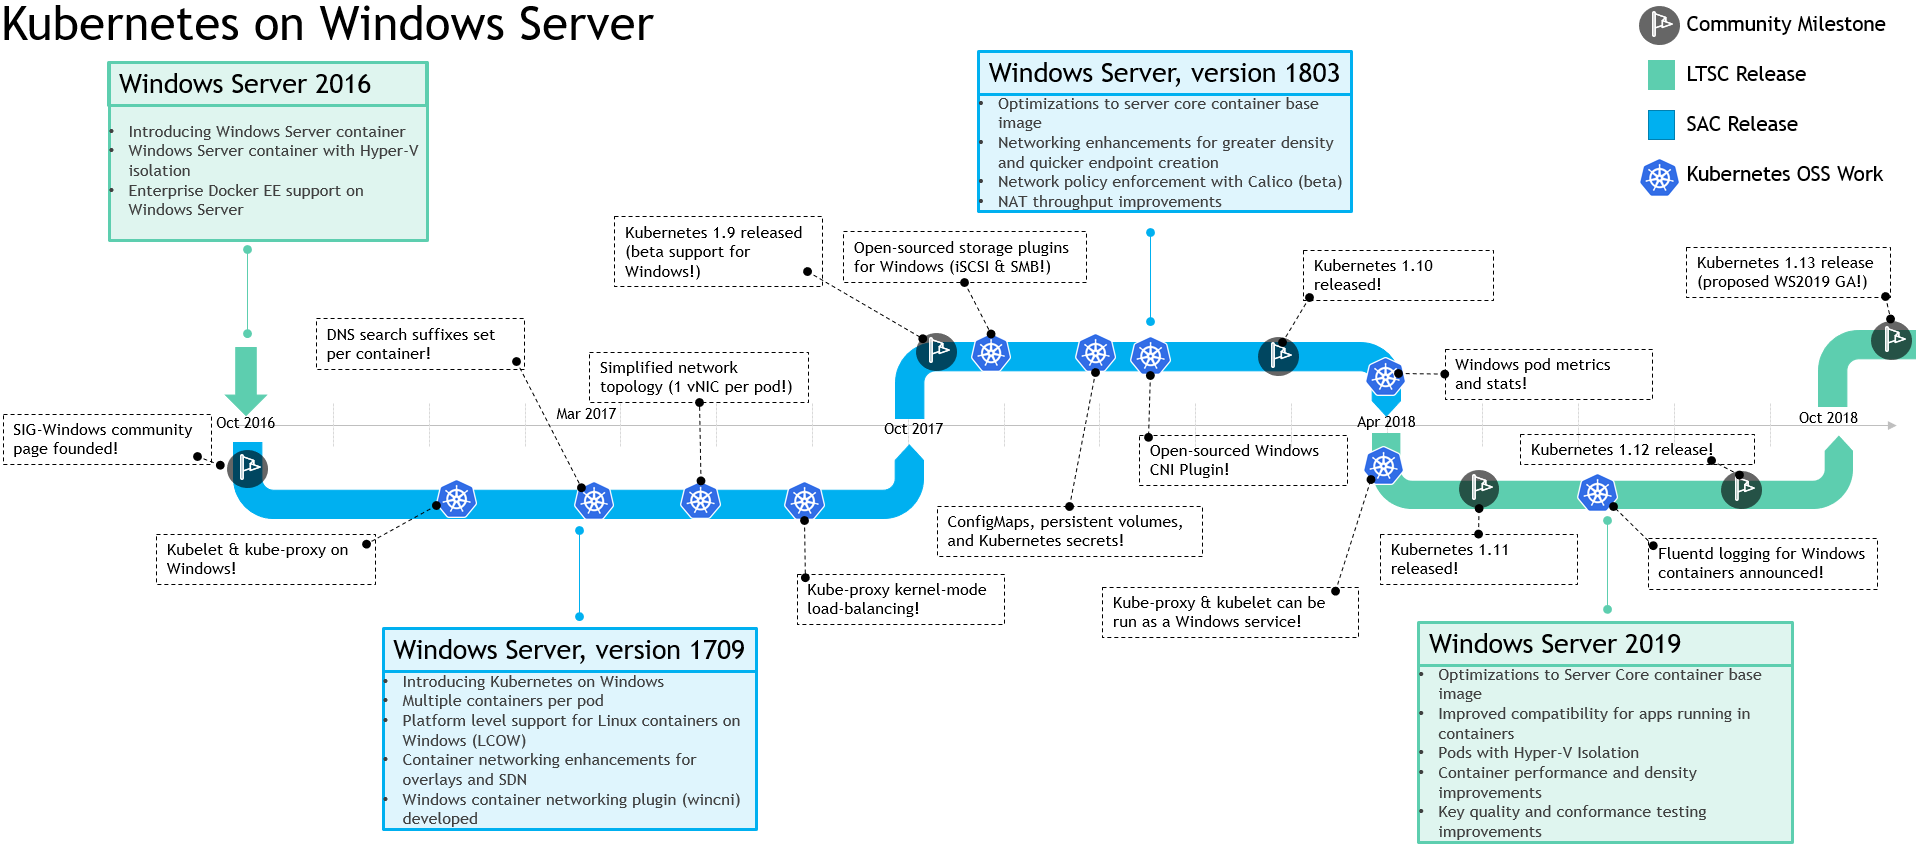 Top 10 Networking Features in Windows Server 2019: #1 Container Networking with Kubernetes